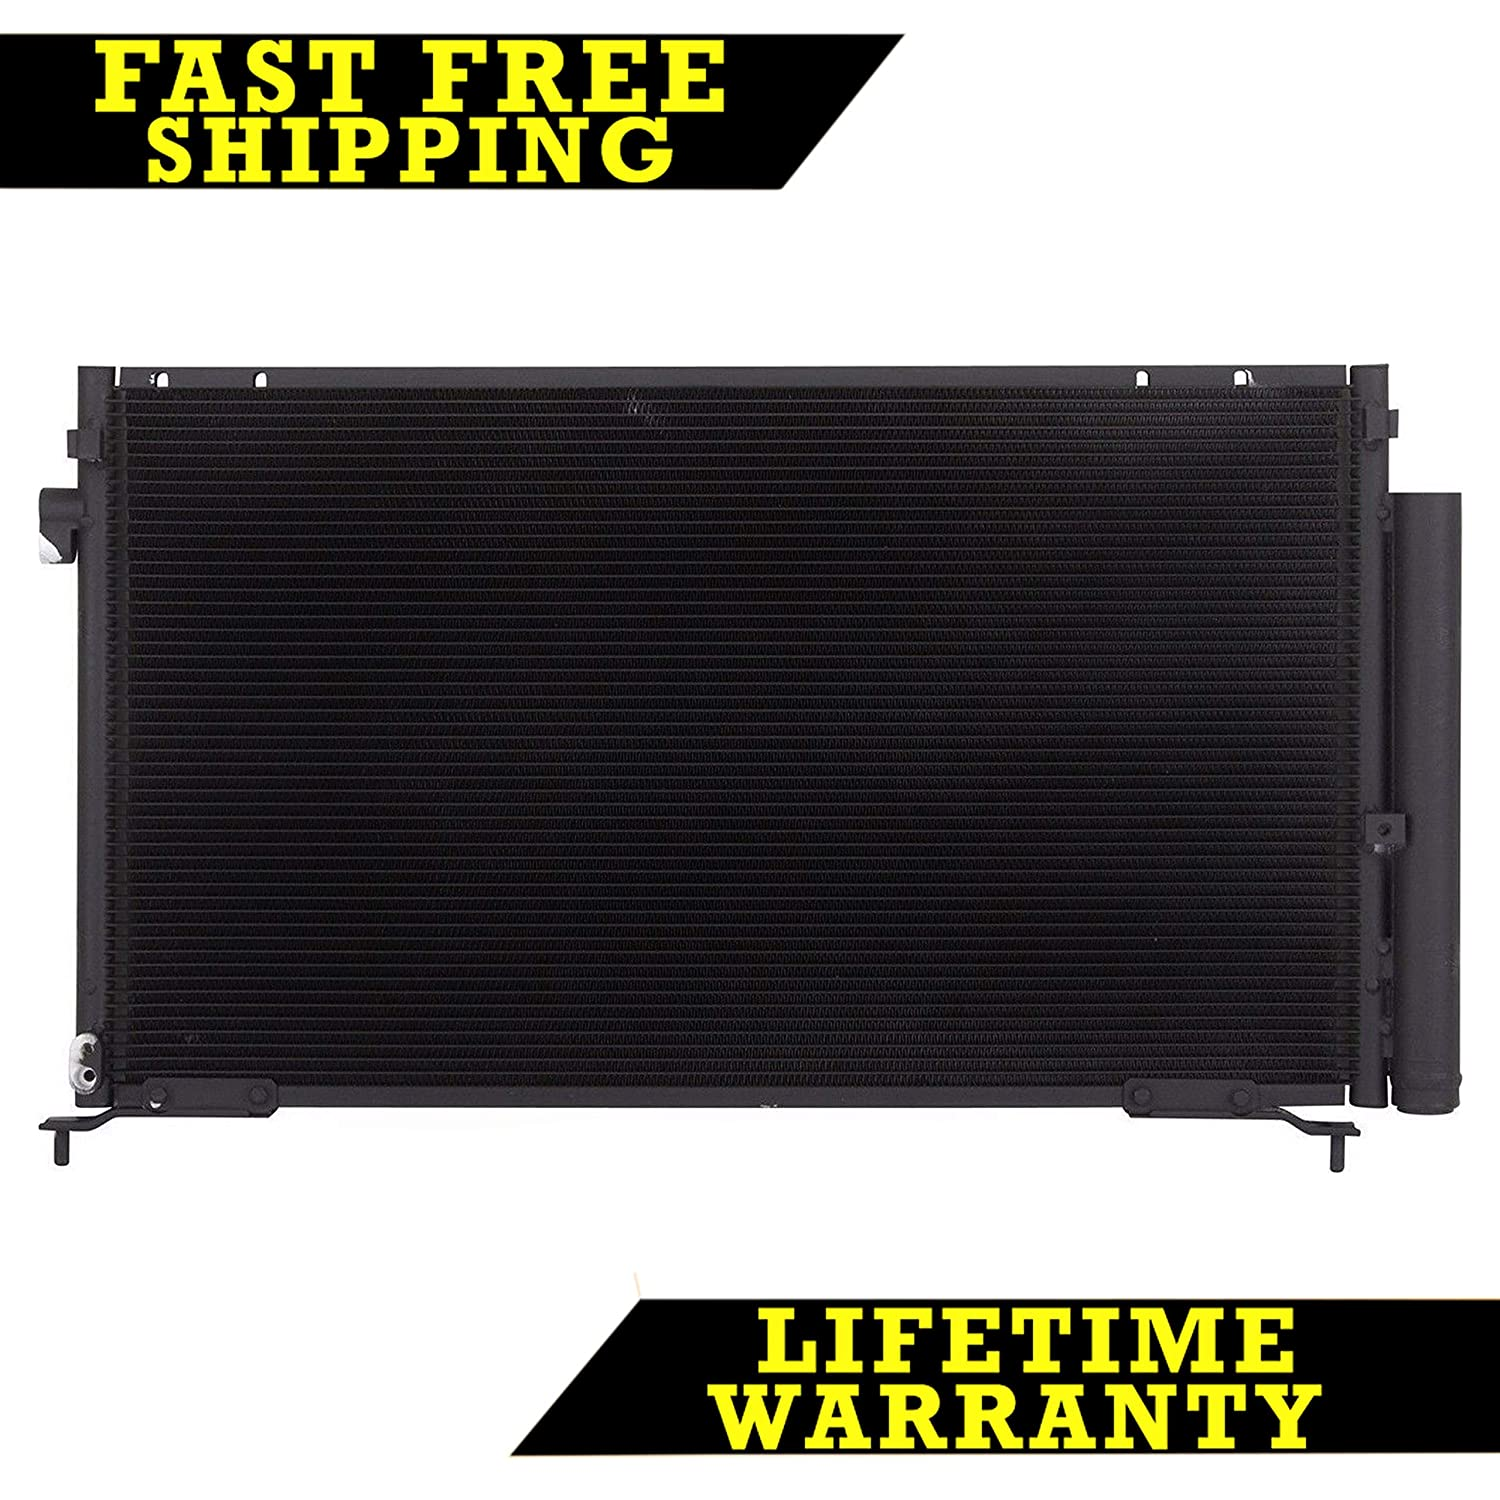 AC A/C CONDENSER FOR HONDA FITS CIVIC 2DR COUPE 1.8 2.0 L4 4CYL 3569 Sunbelt Radiators